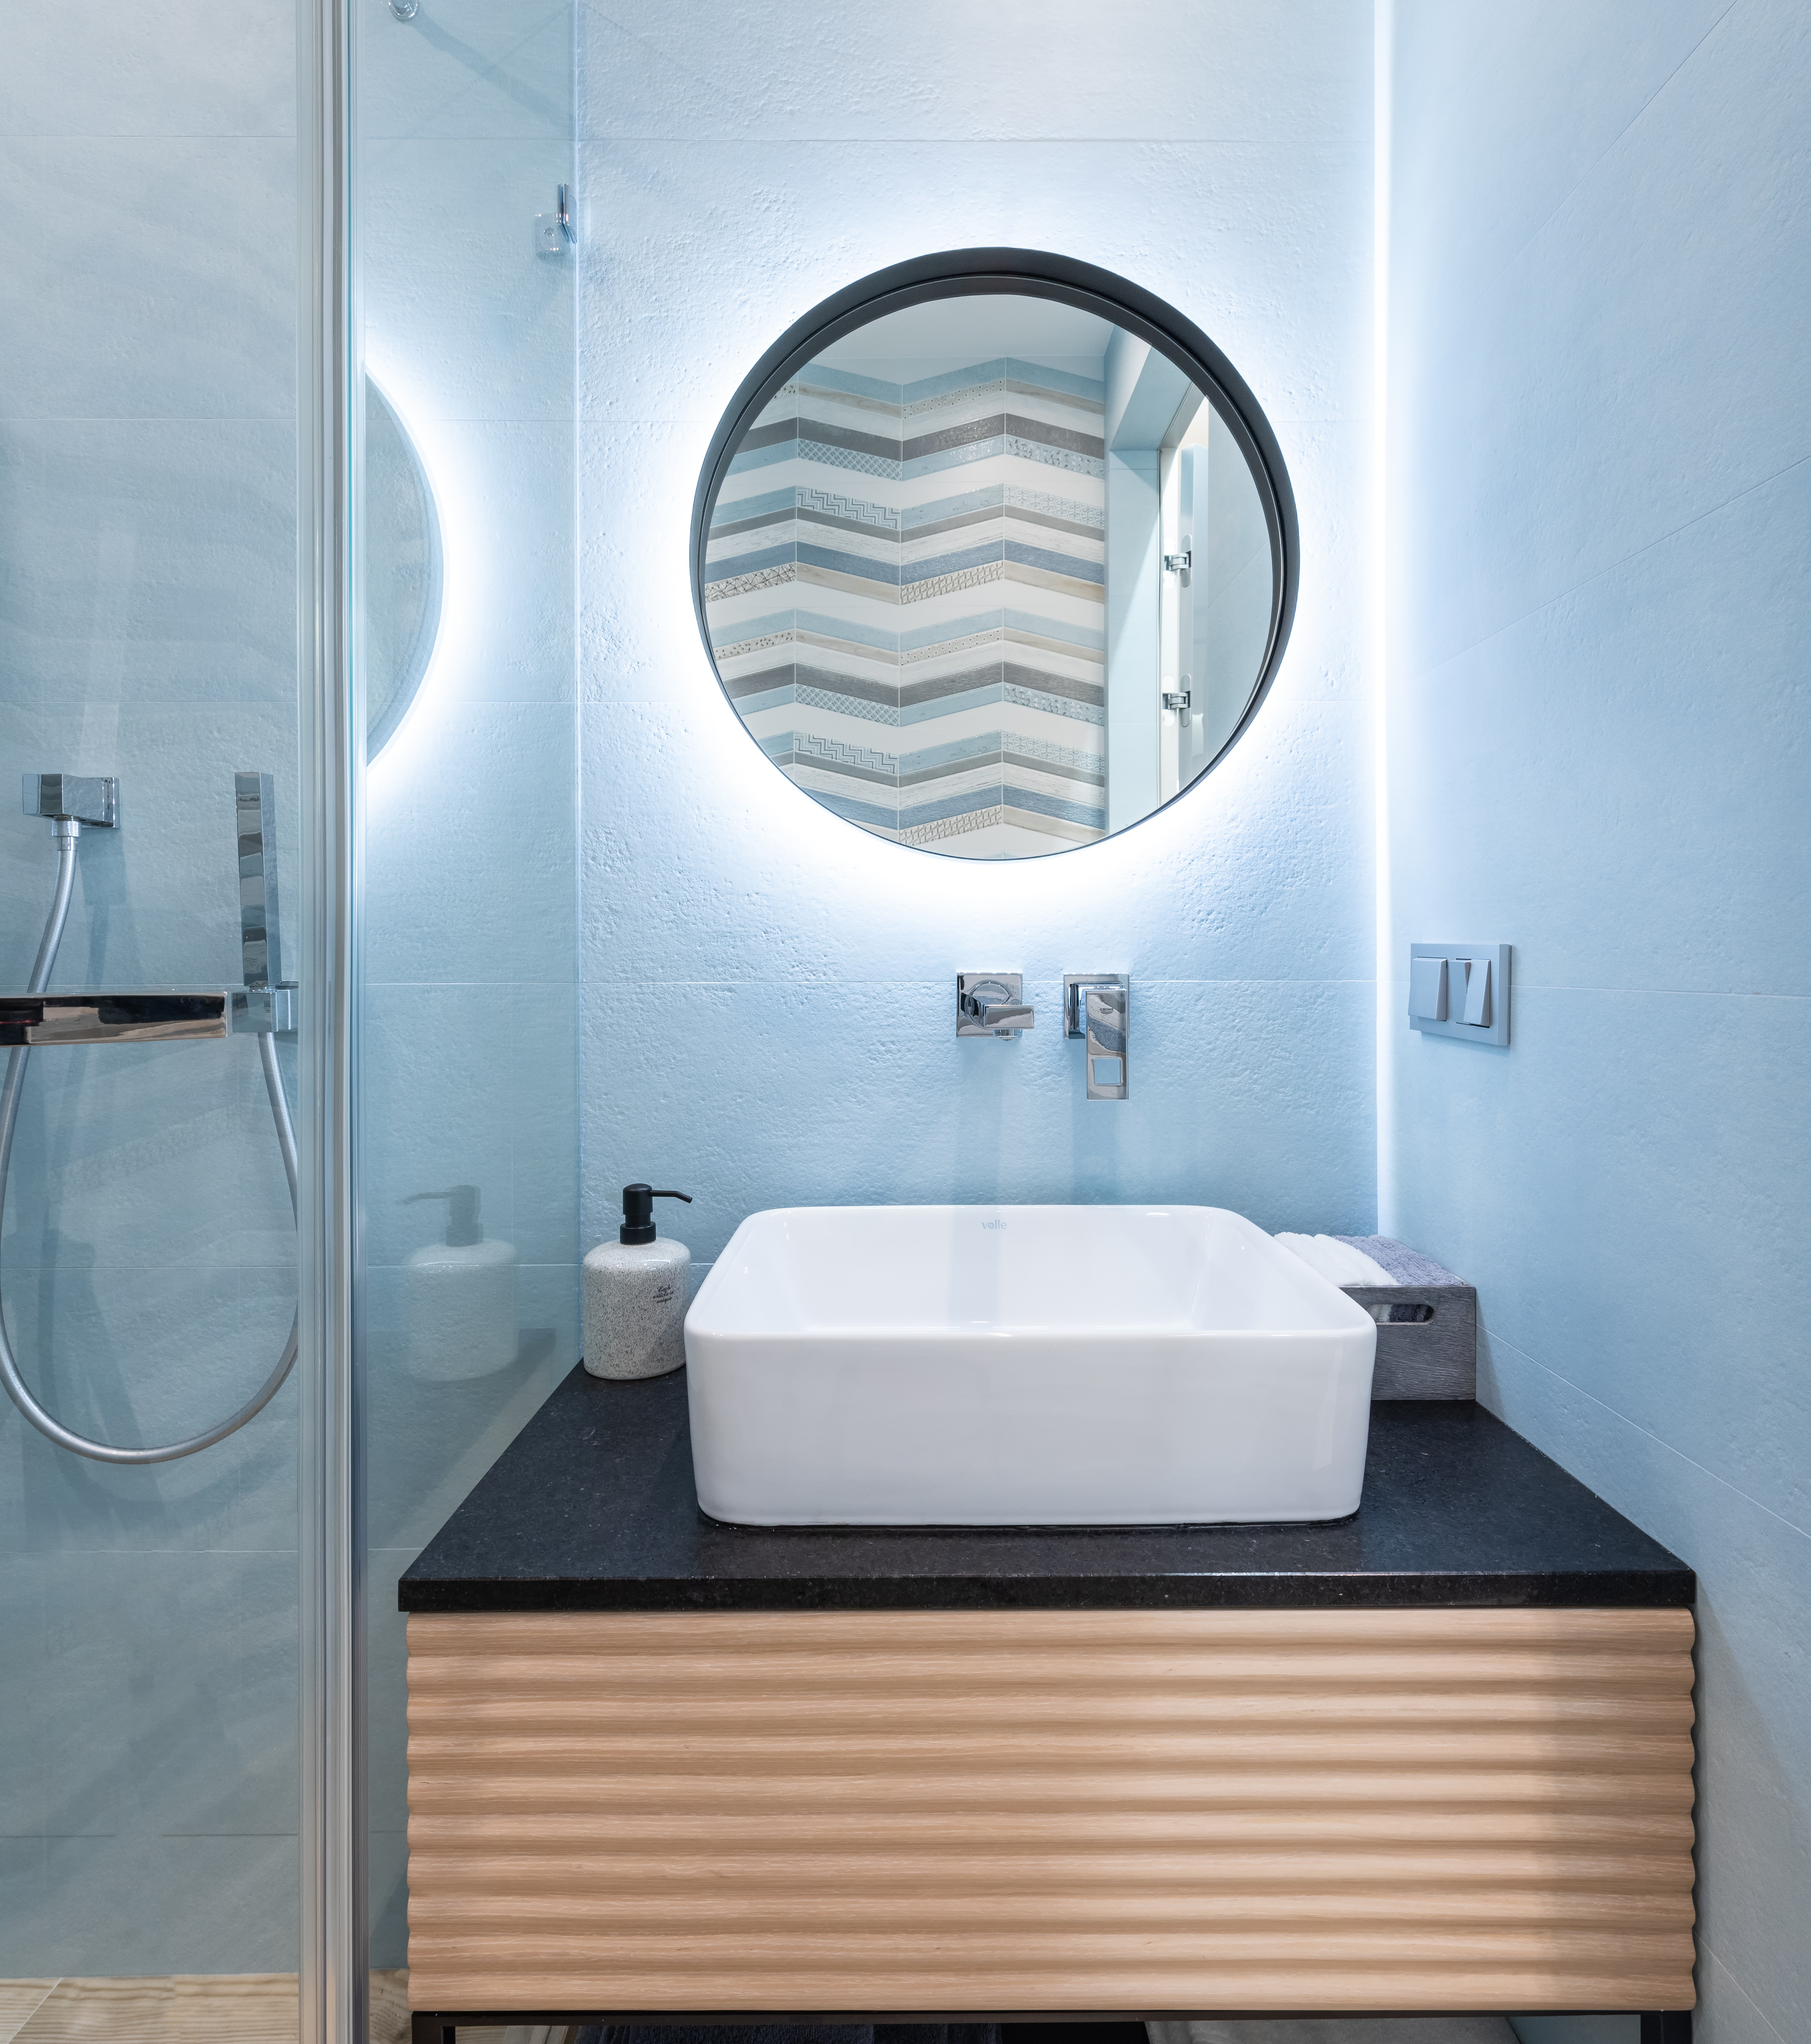 Photo of a bathroom sink and mirror above. The mirror has bright recessed light that brightens up the room.